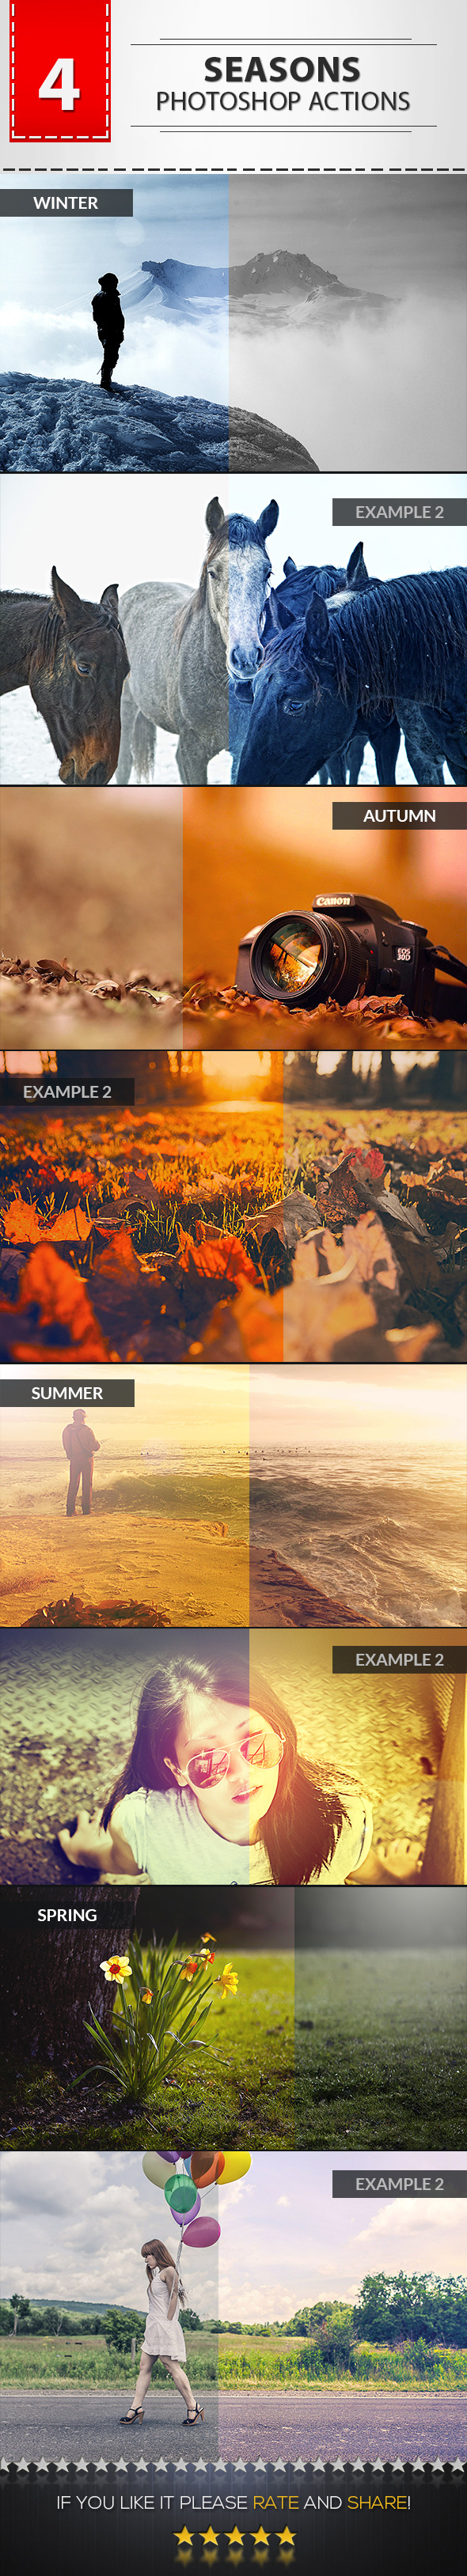 GraphicRiver 4 Seasons Photoshop Actions 9256876